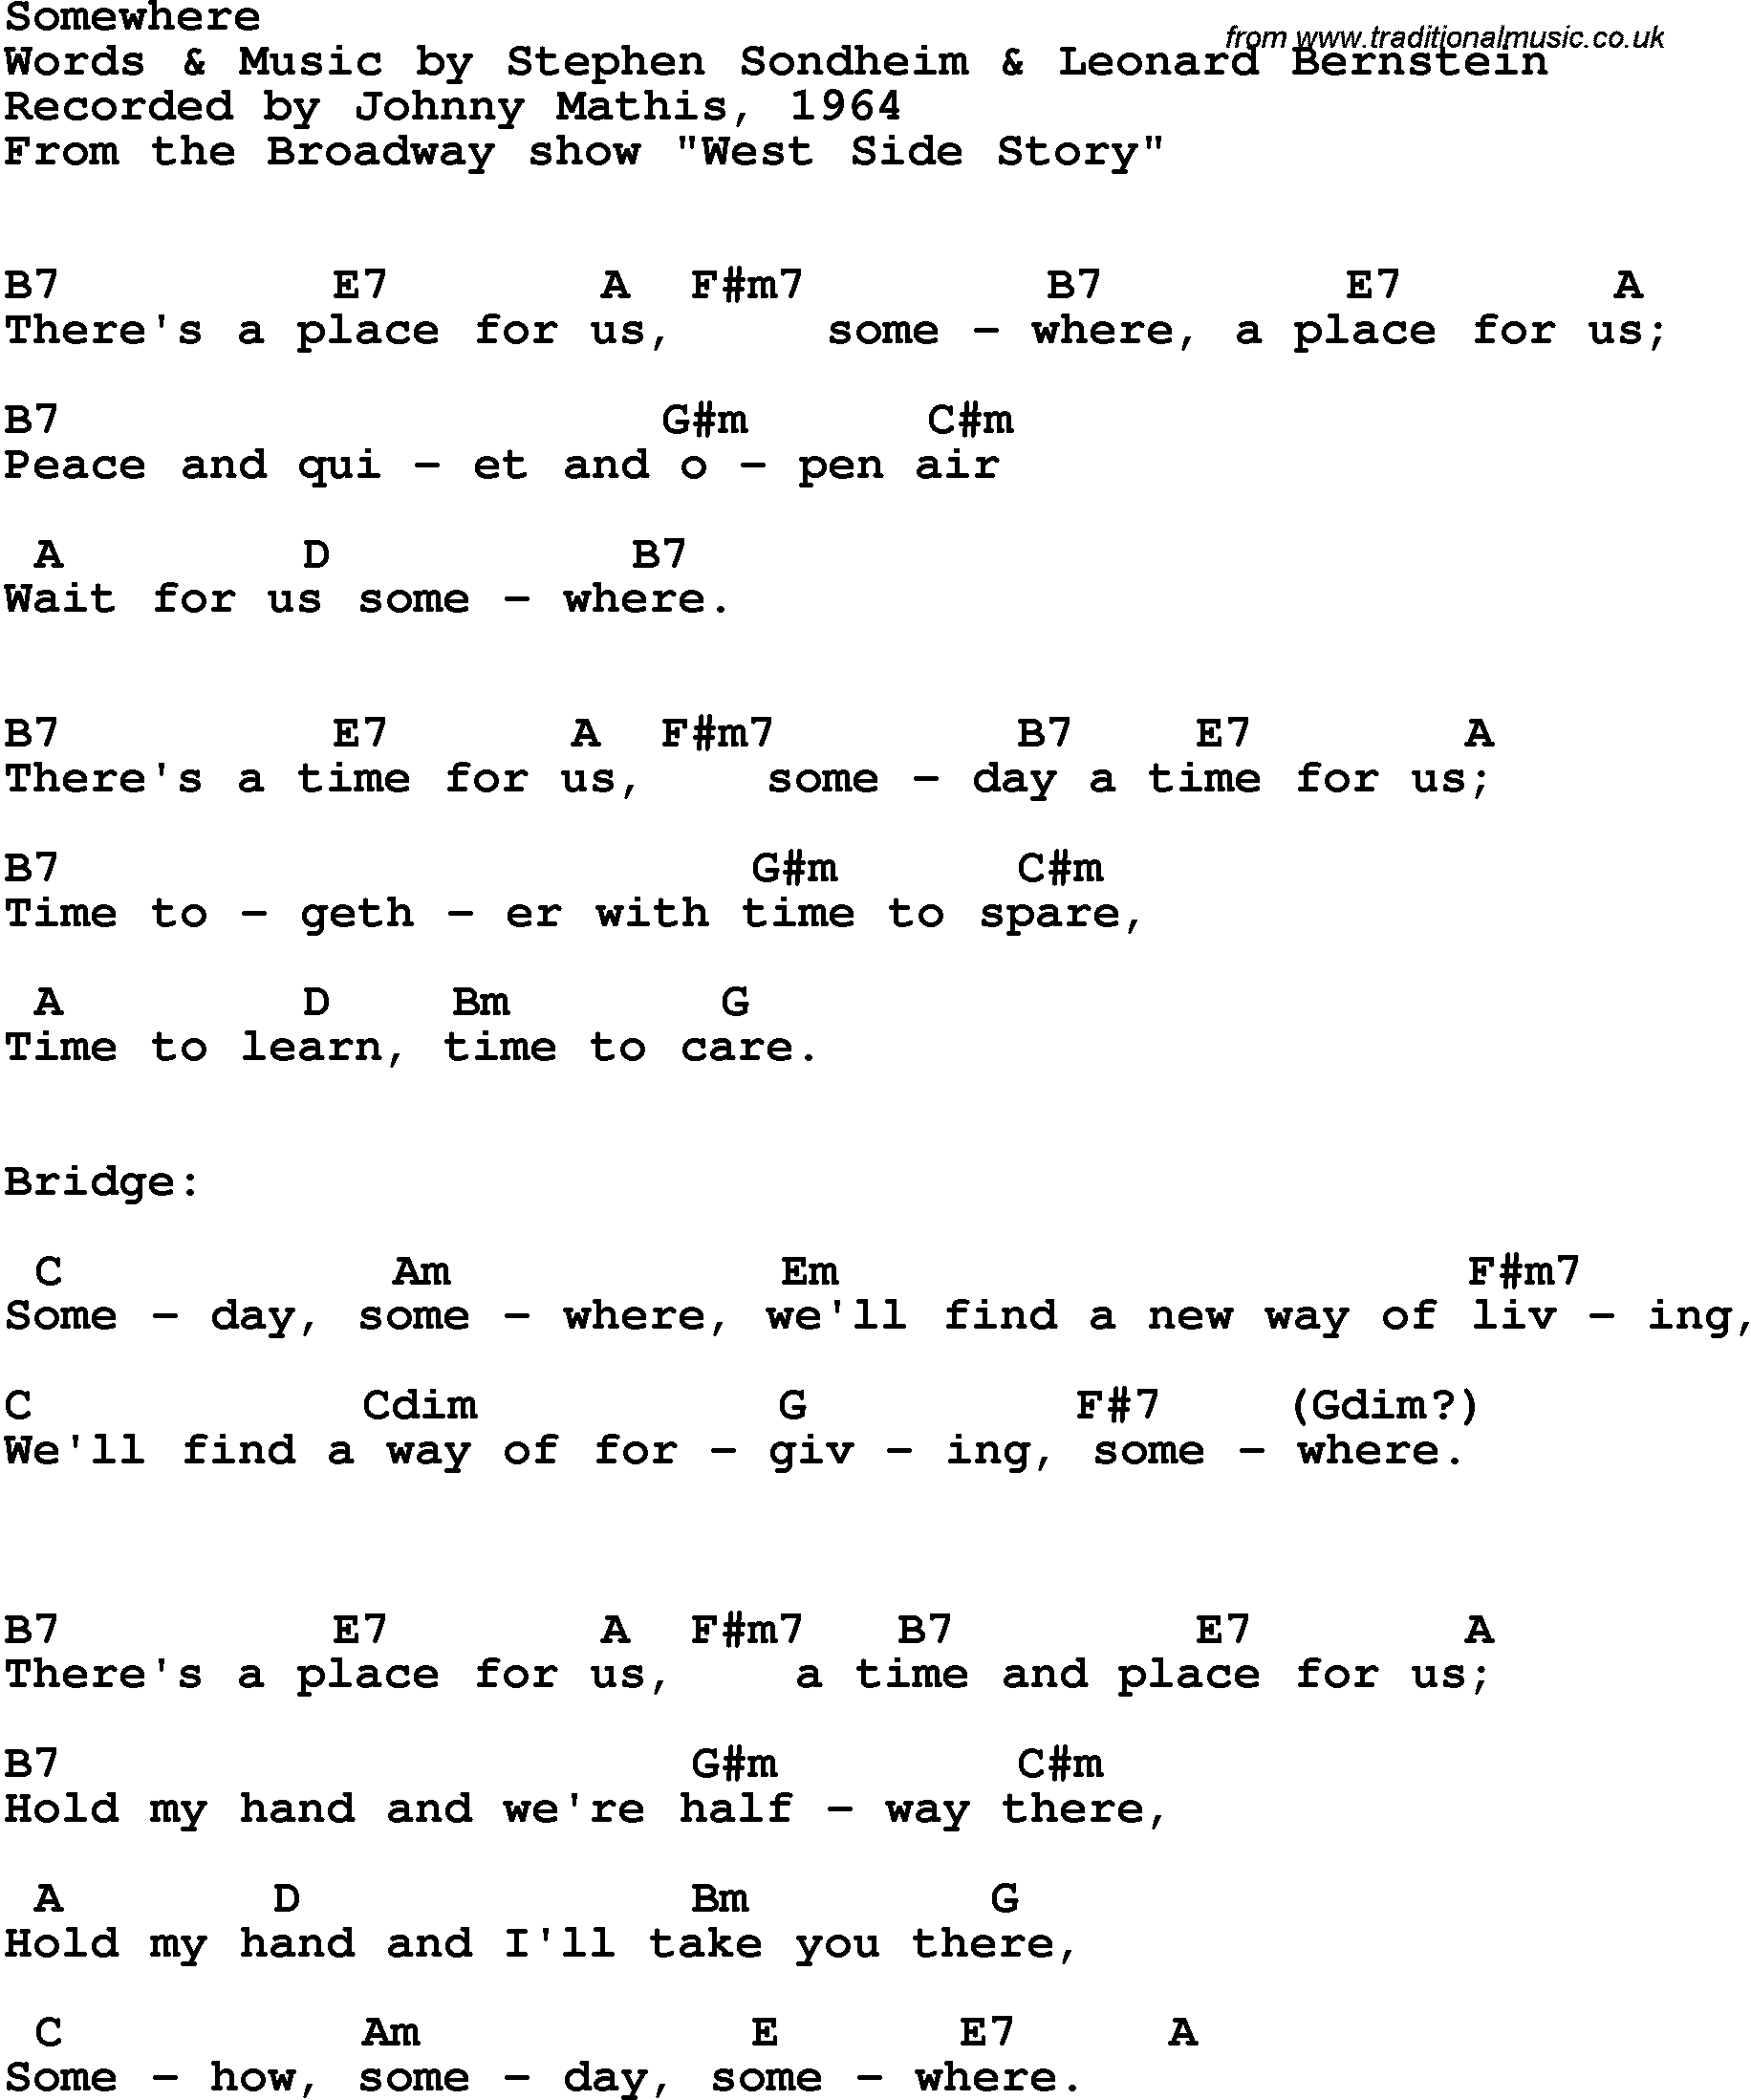 Song Lyrics With Guitar Chords For Somewhere Johnny Mathis 1964